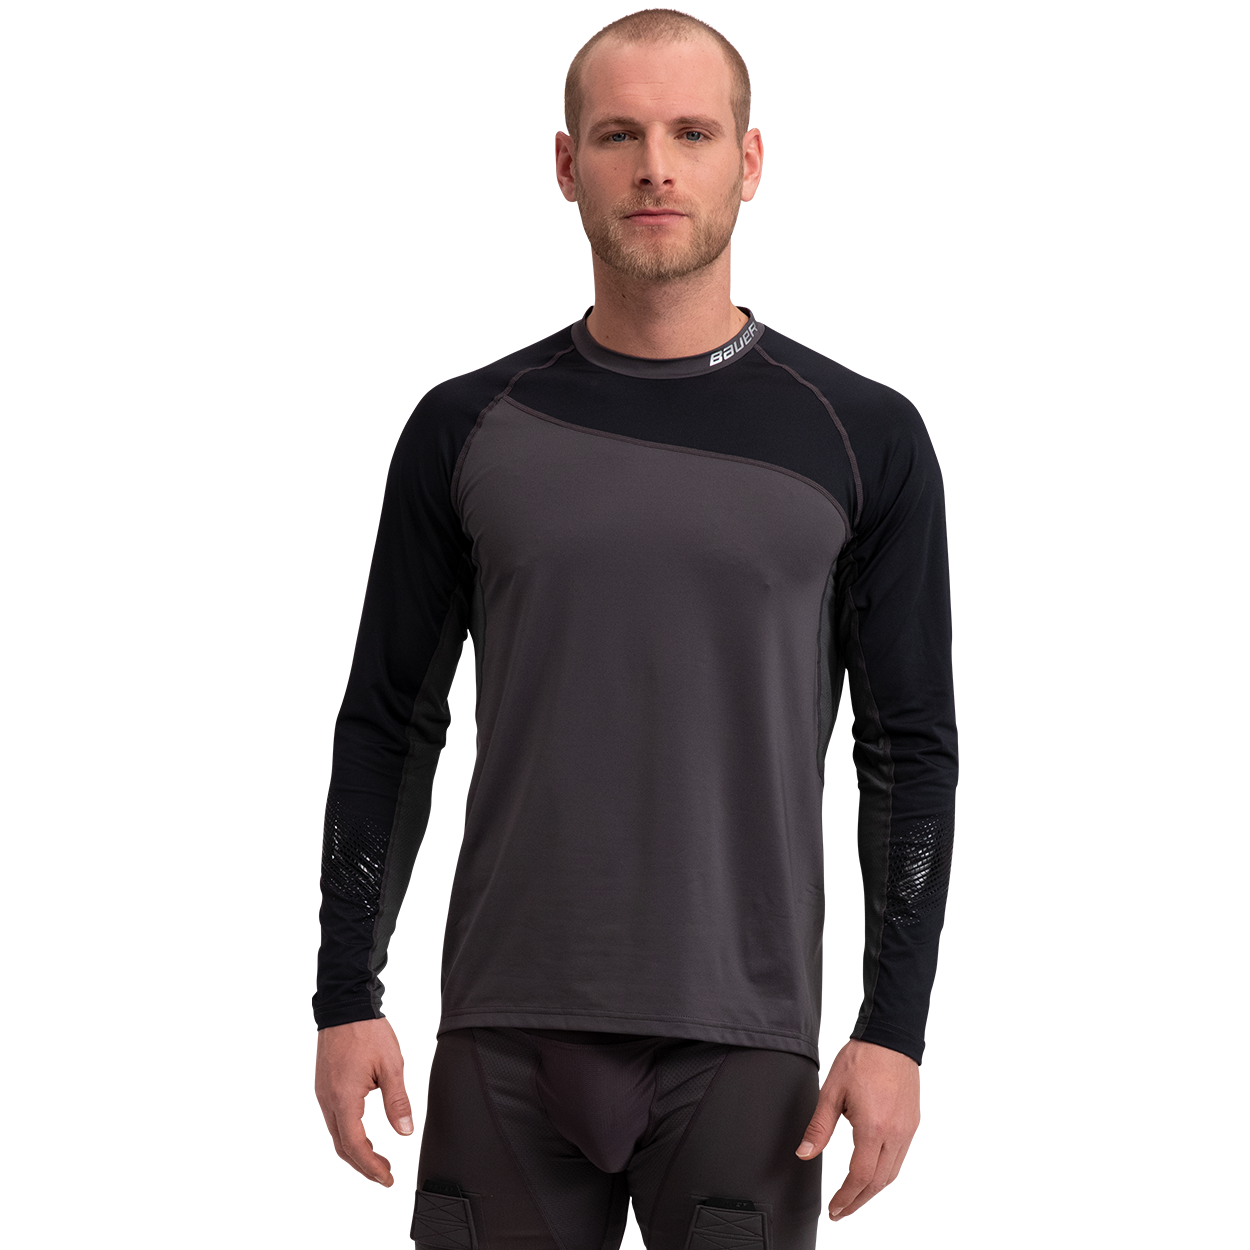 Pro Long Sleeve Base Layer Top,Черный,Размер M